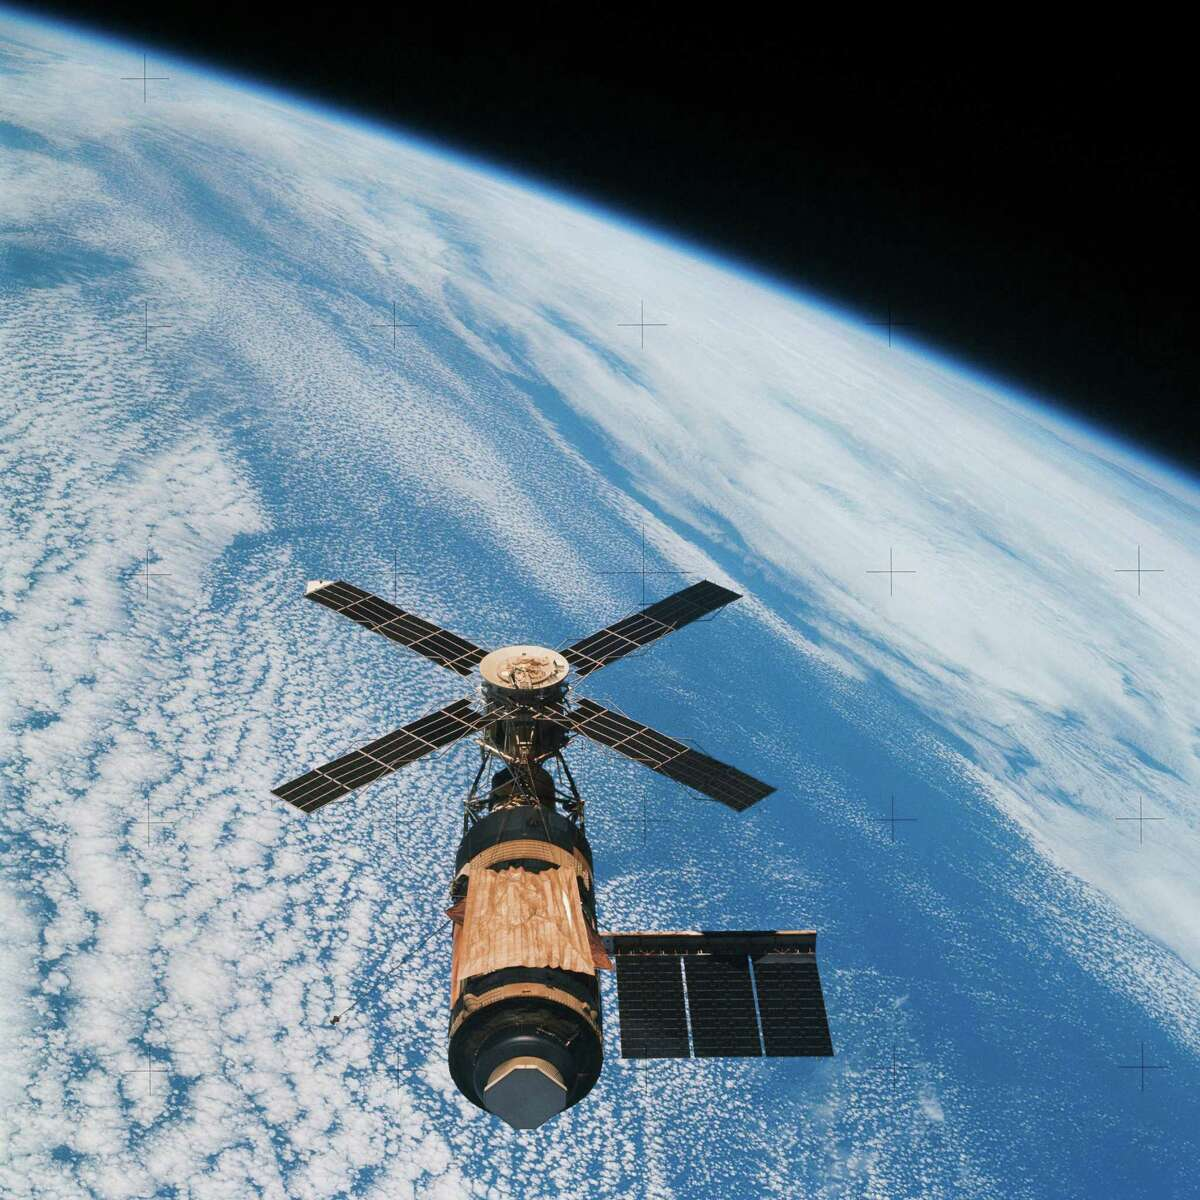 The Skylab 4 Command and Service modules photographed the Skylab space station during its final fly around before returning home.Image Credit: NASA